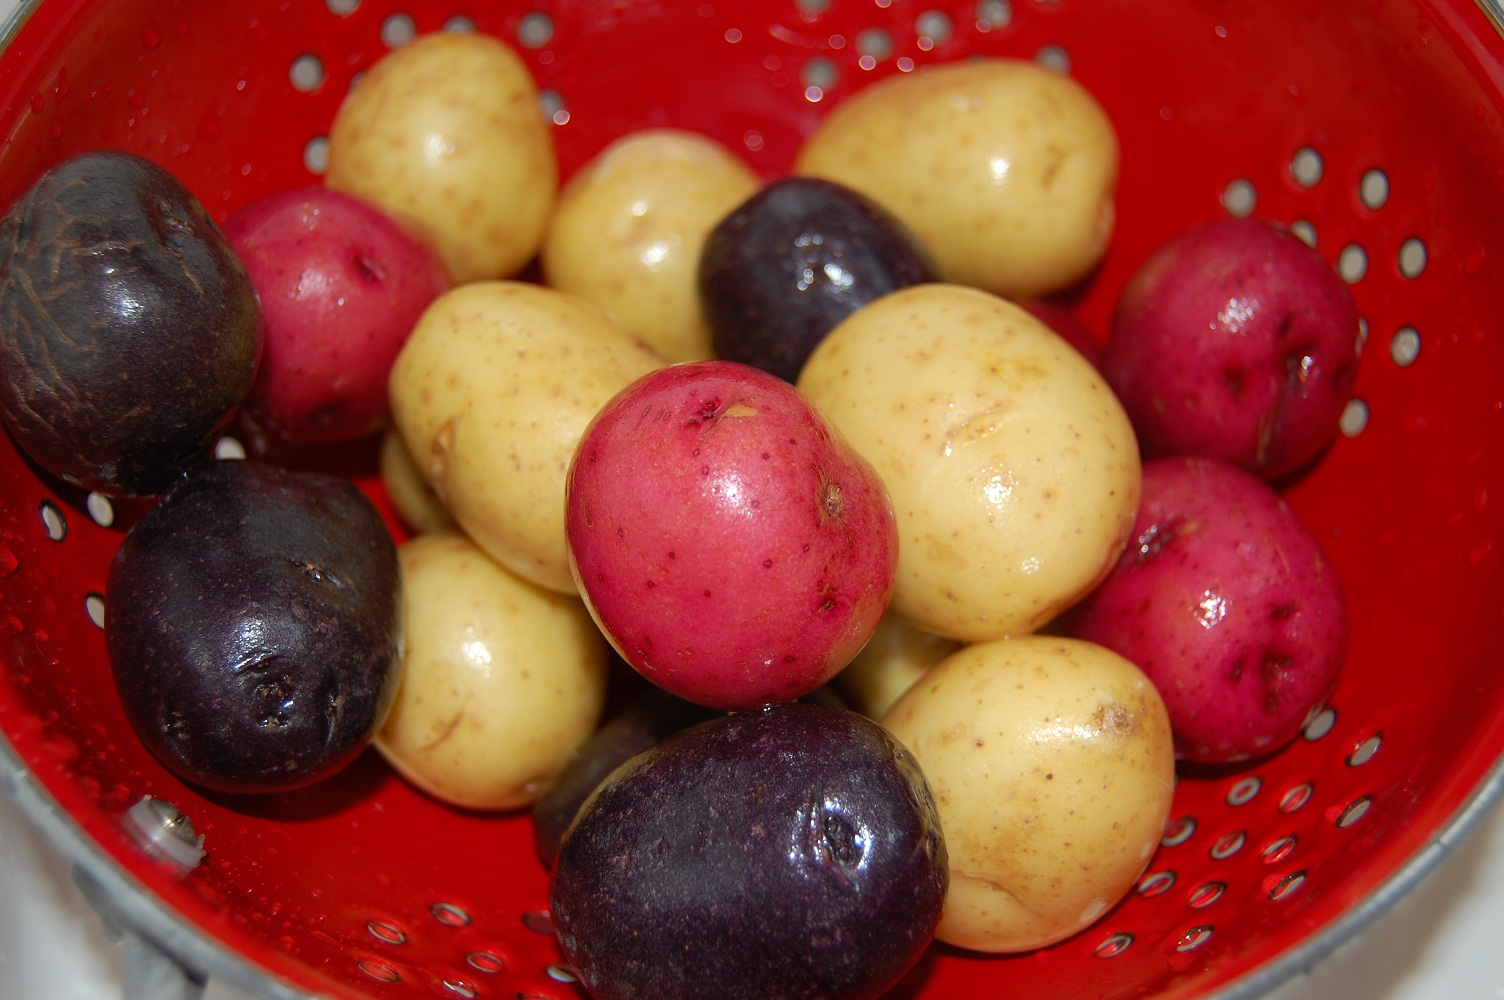 ingredients 2 pounds of small potatoes red white and blue